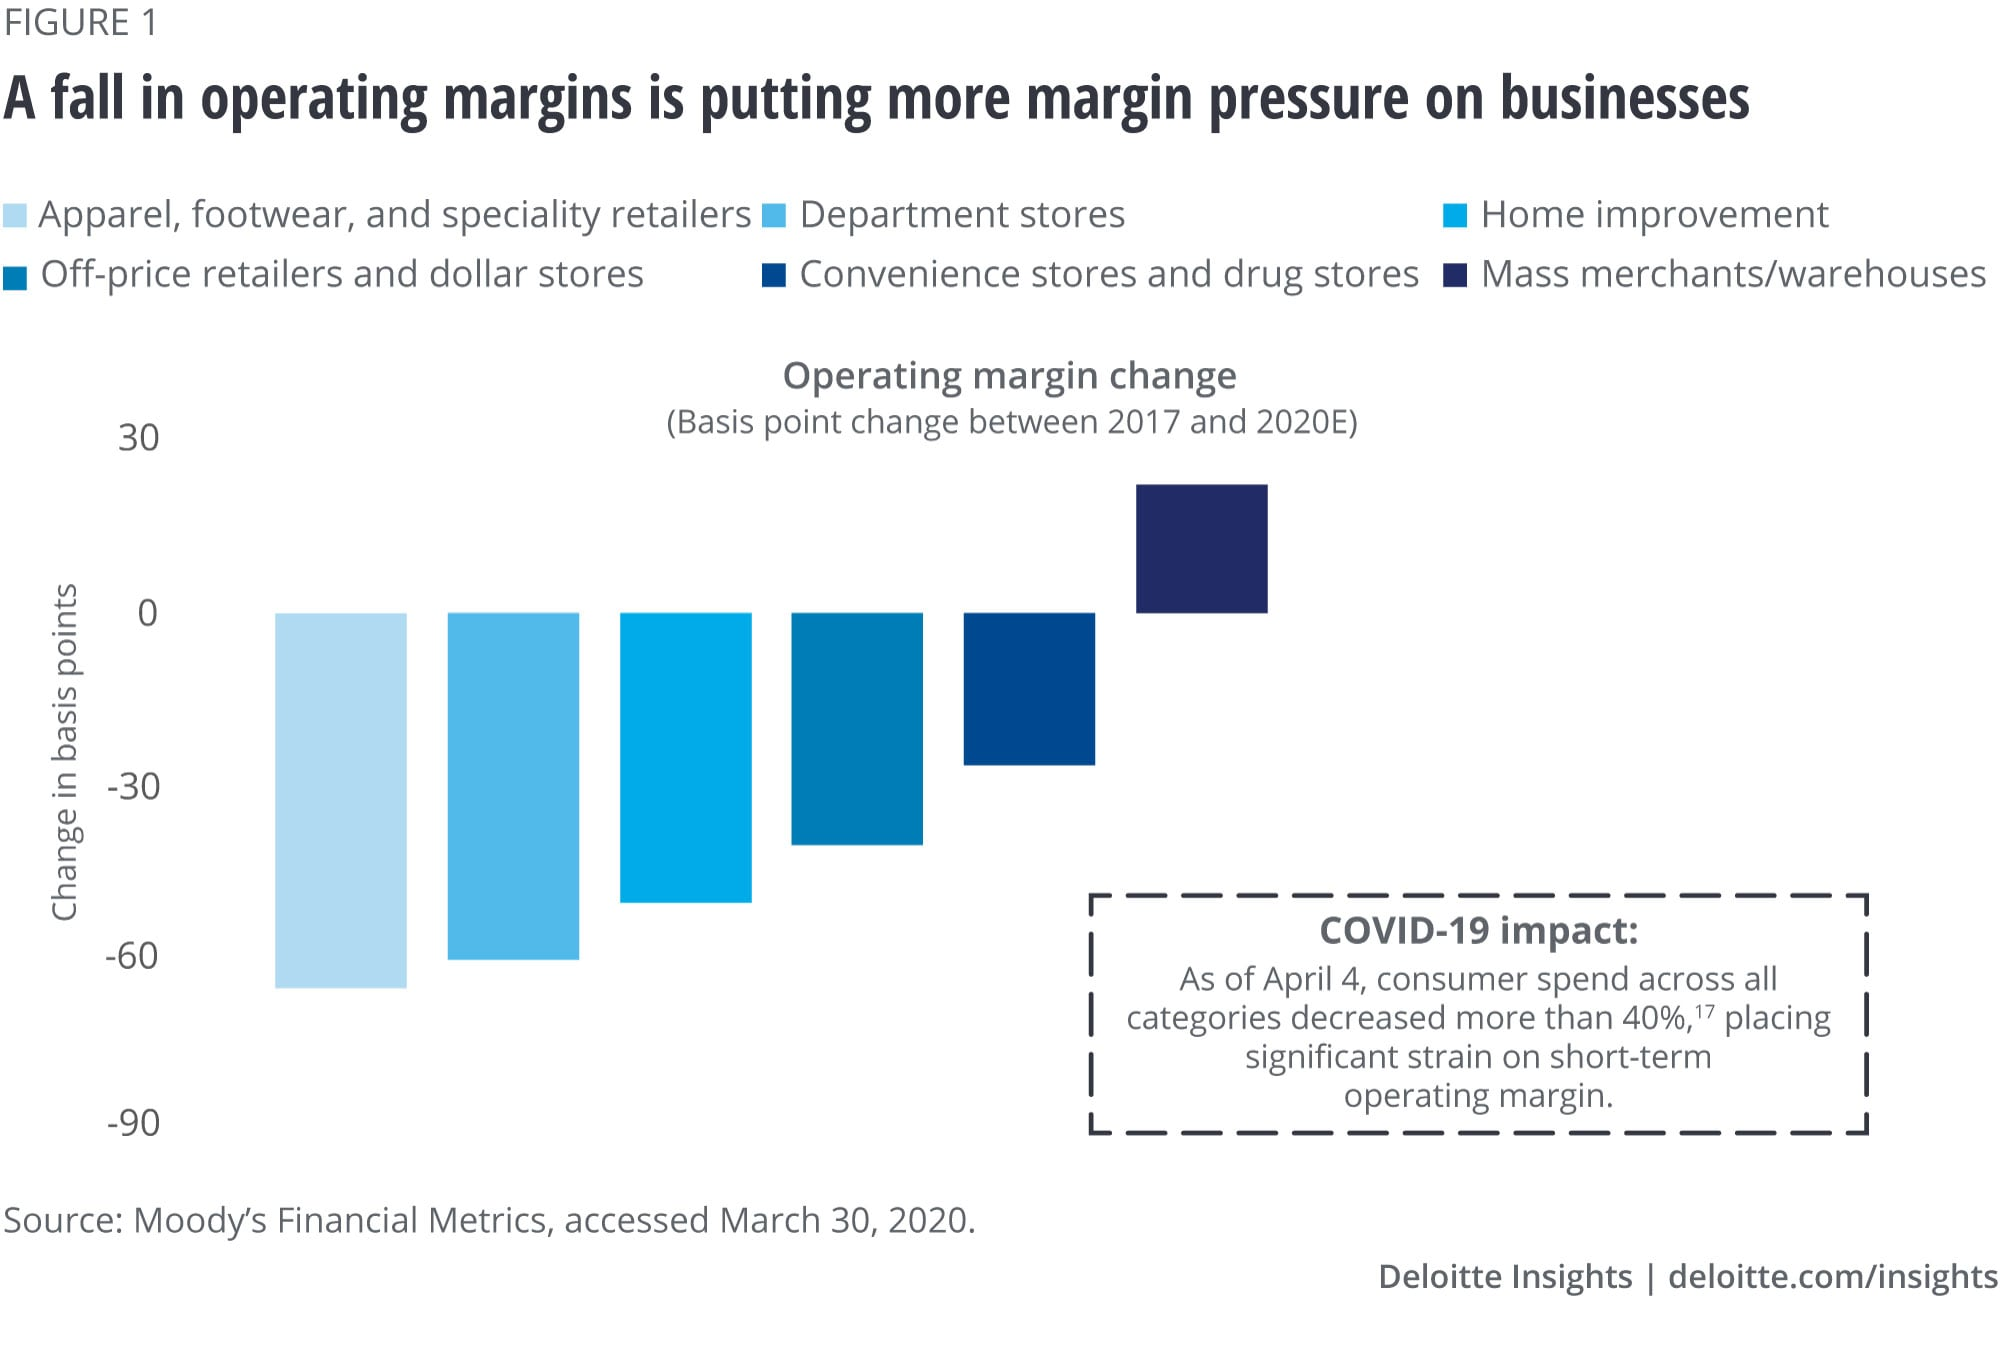 A fall in operating margins is putting more margin pressure on businesses